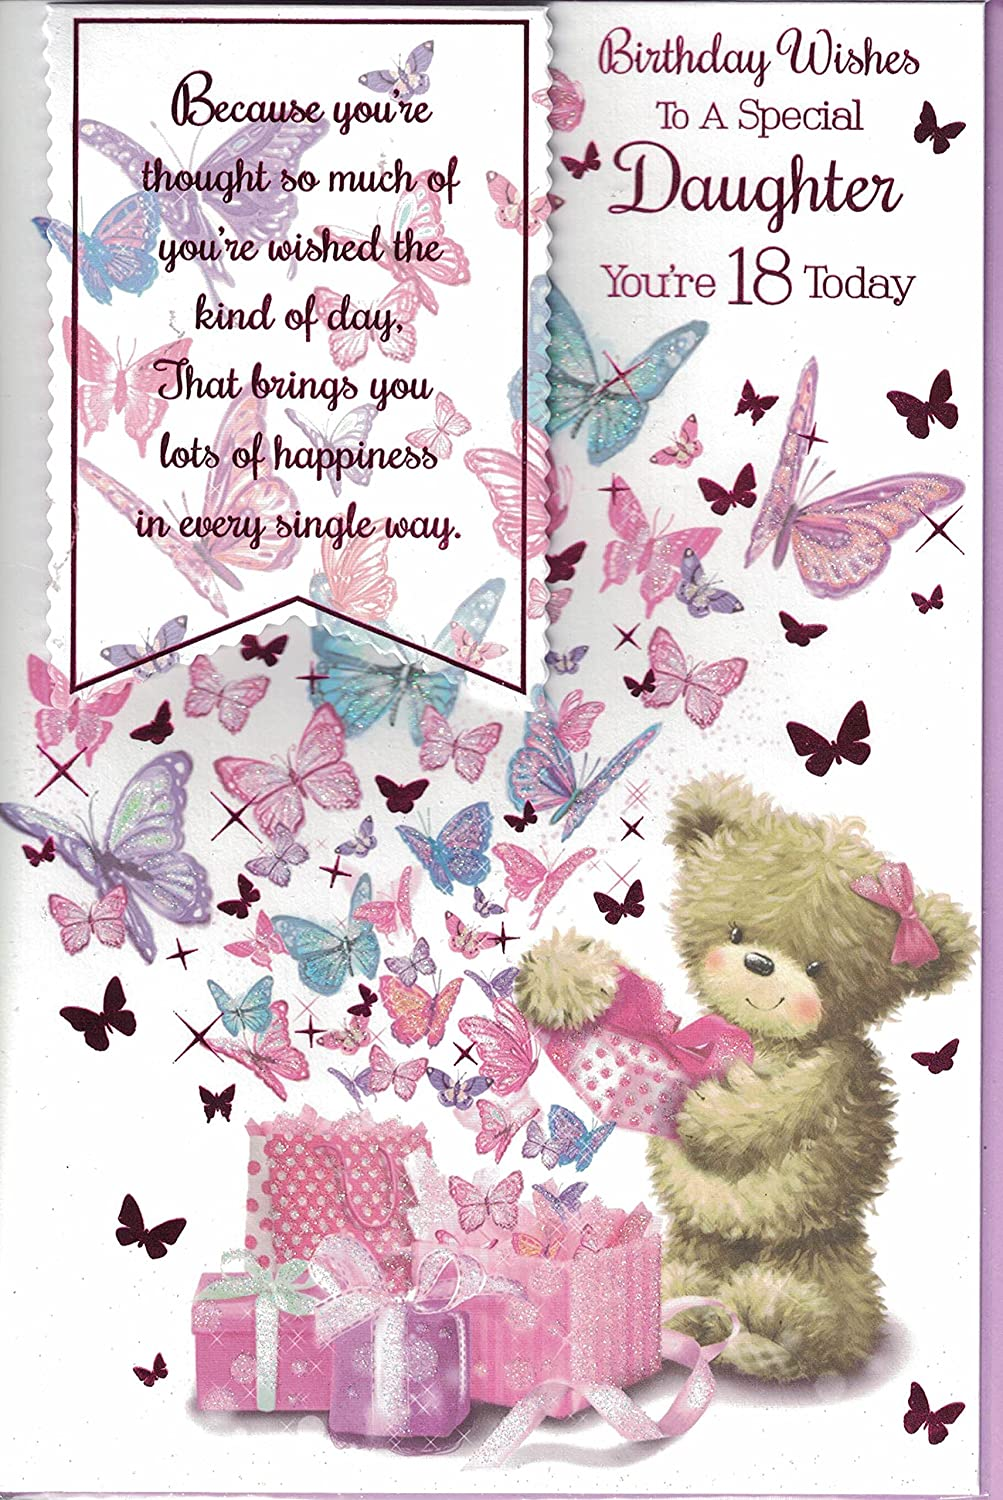 Daughter 18th Birthday Card Birthday Wishes To A Special Daughter Your Re 18 Today Teddy Bear Butterflies Amazon Co Uk Garden Outdoors